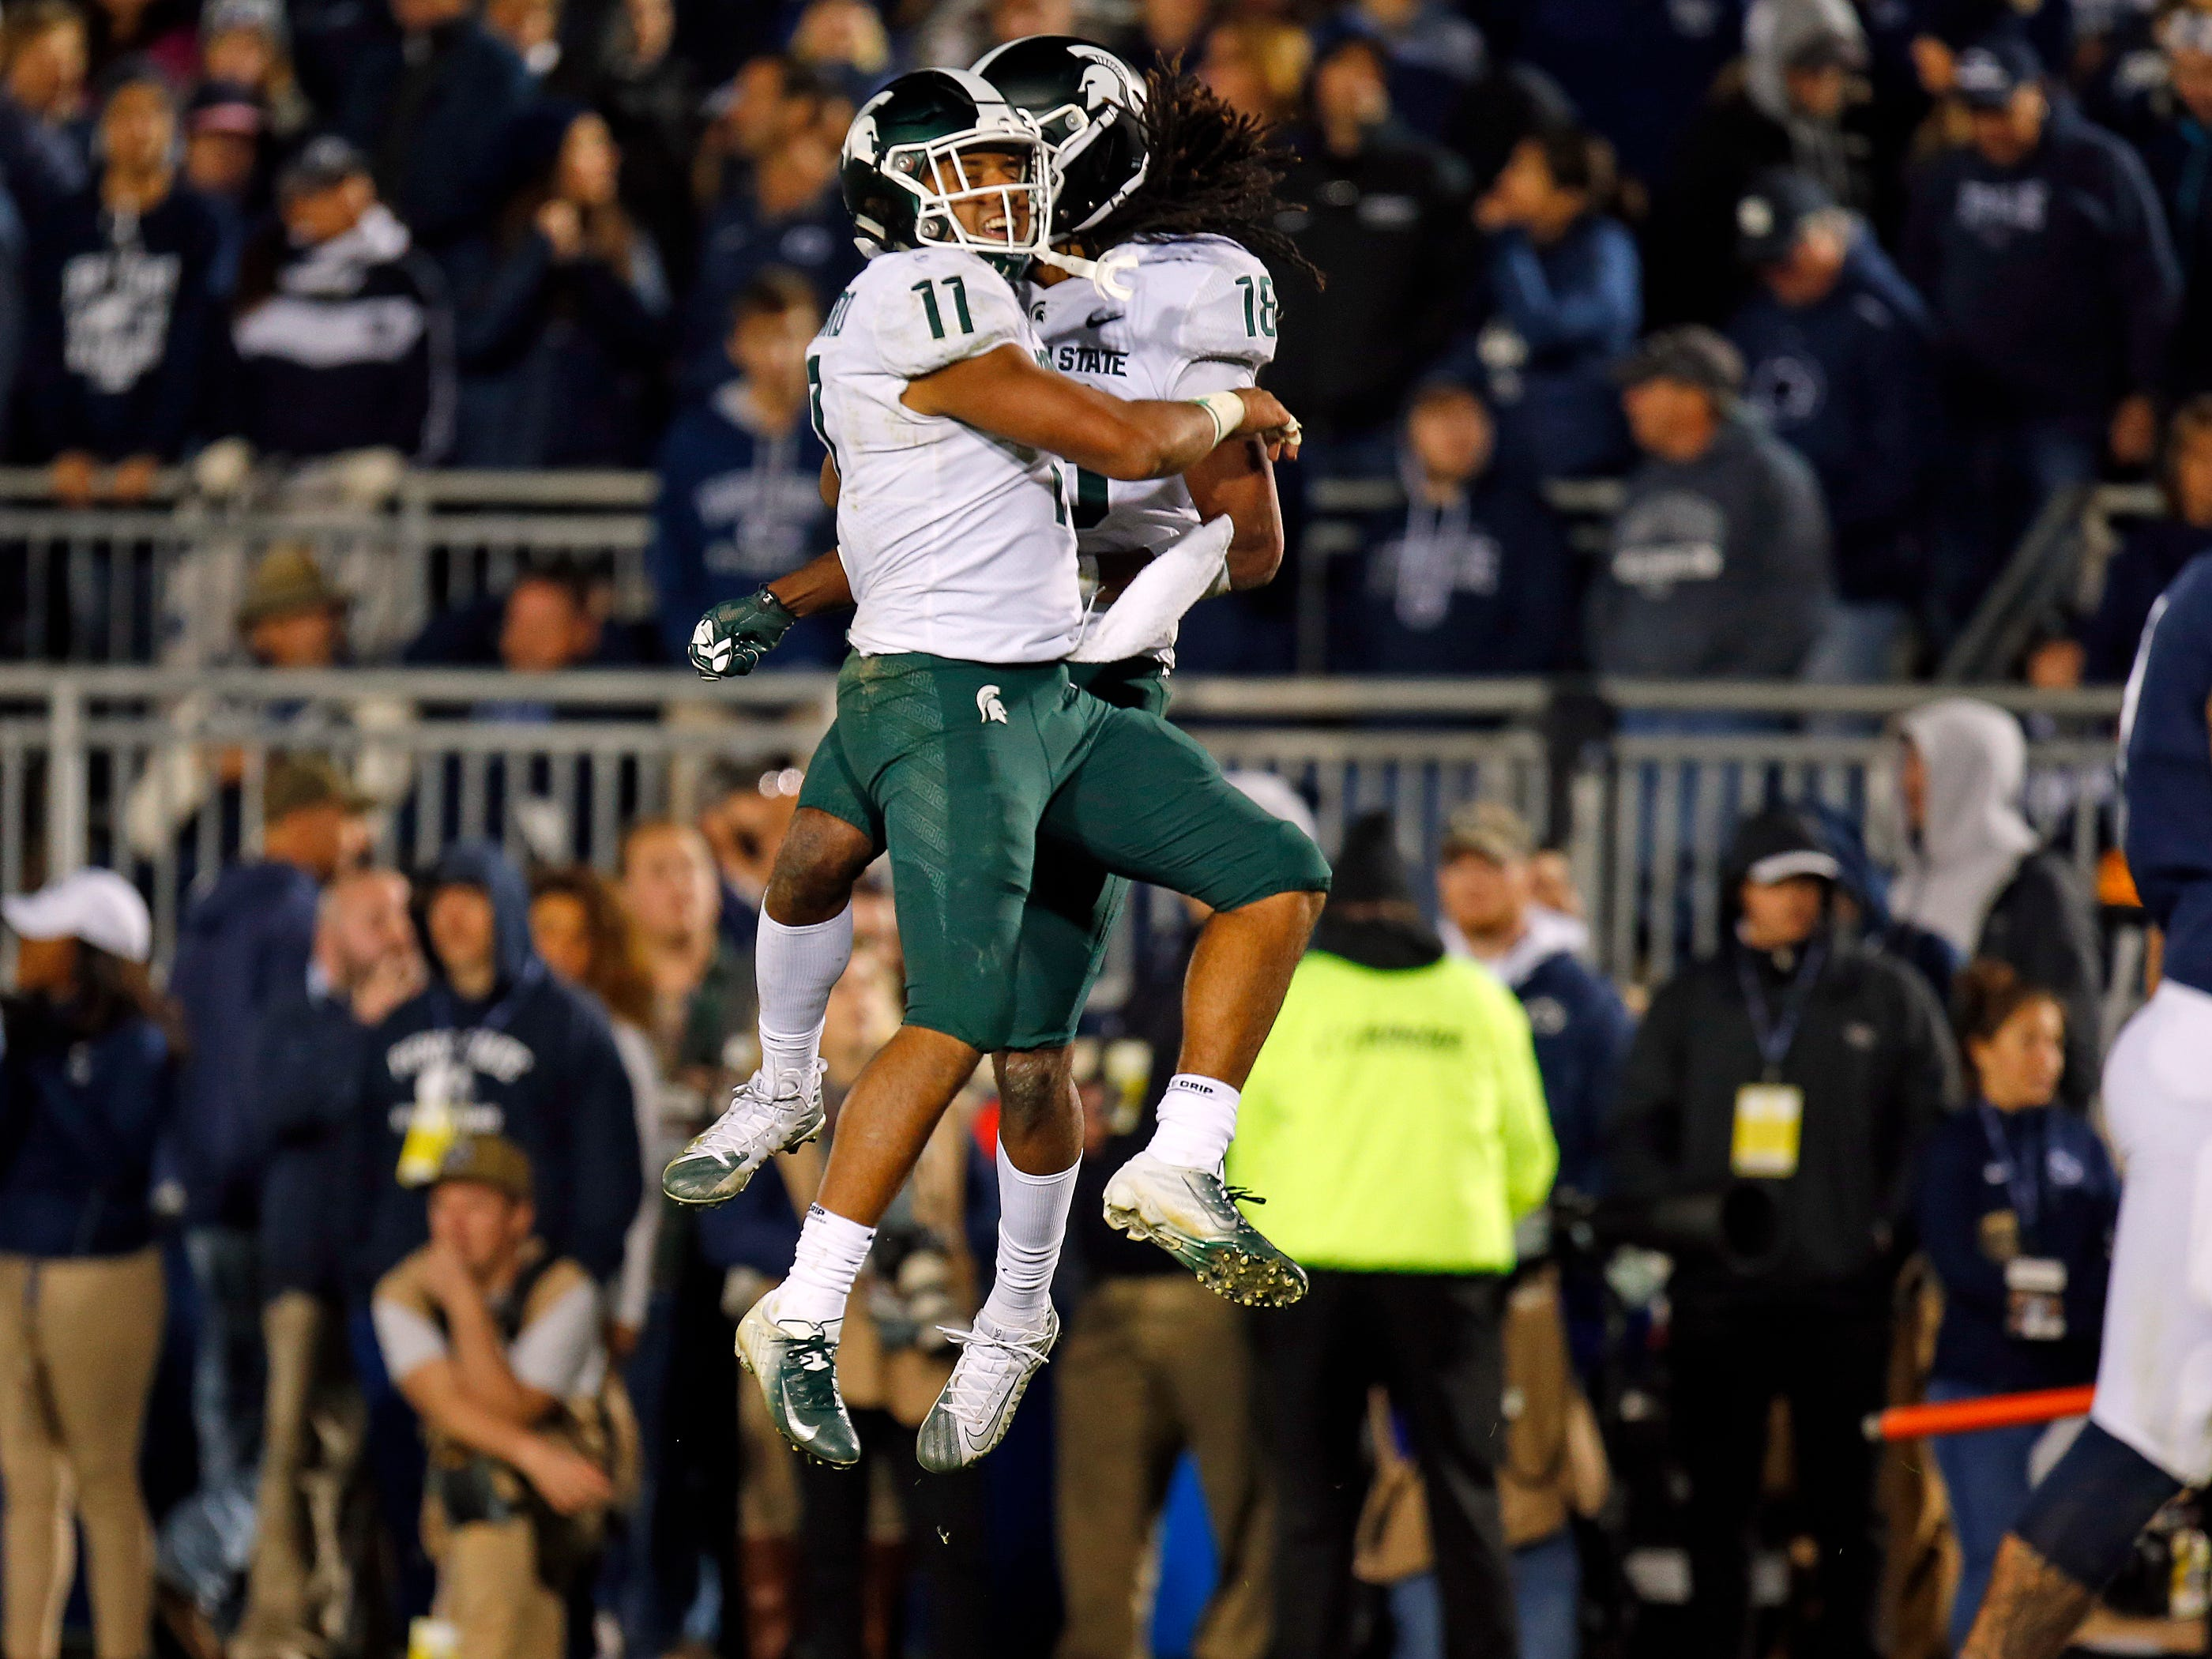 Felton Davis III #18 of the Michigan State Spartans celebrates with Connor Heyward #11 of the Michigan State Spartans after catching a 25 yard touchdown pass in the fourth quarter against the Penn State Nittany Lions on October 13, 2018 at Beaver Stadium in State College, Pennsylvania.